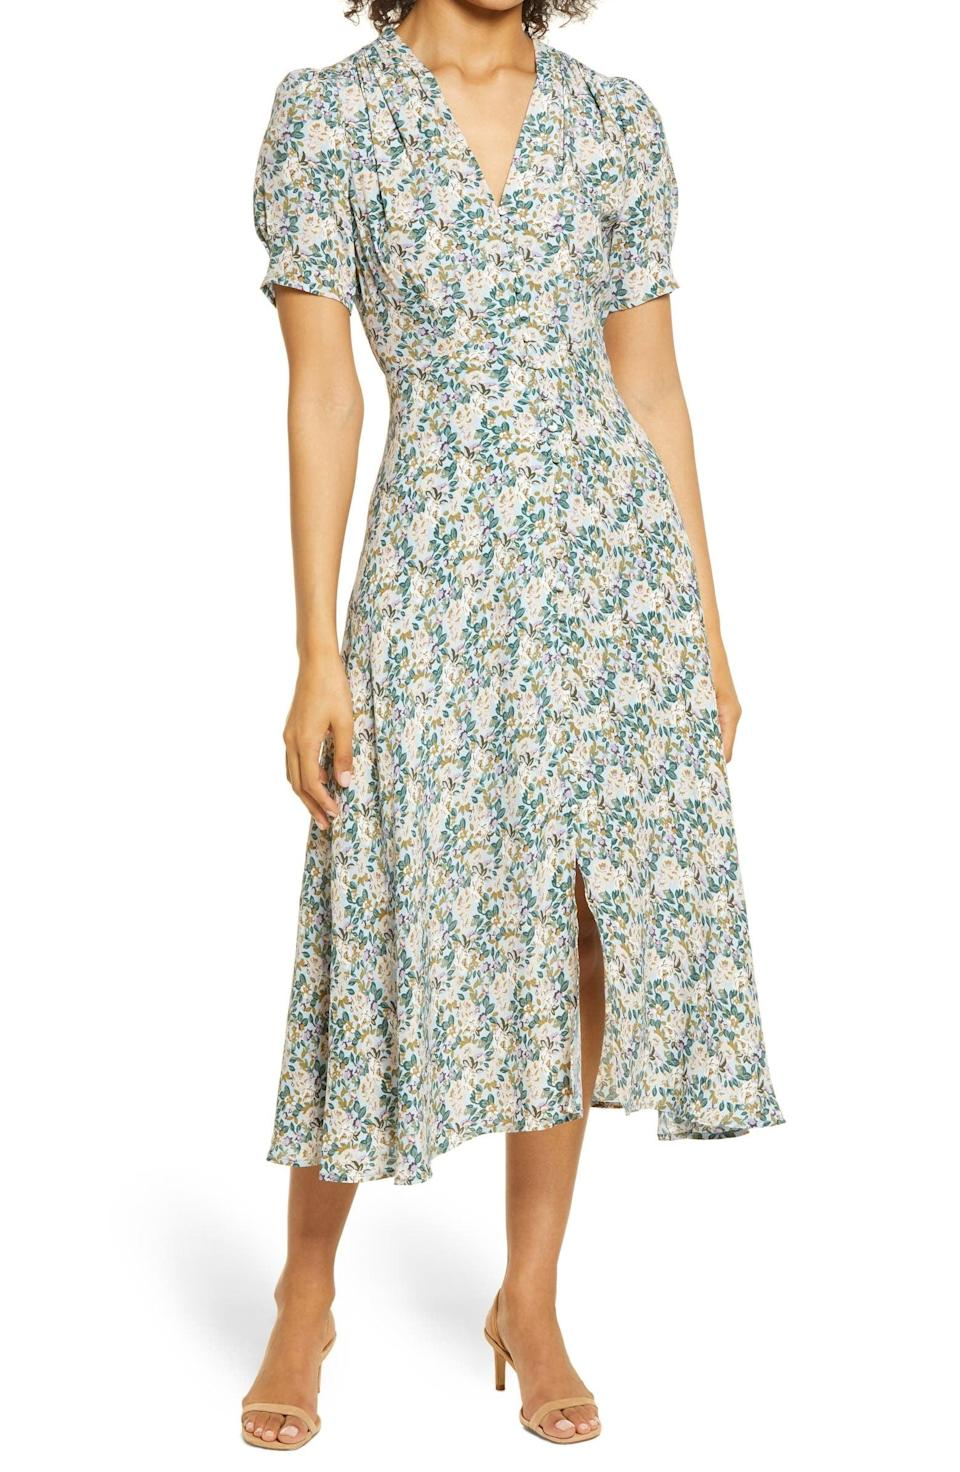 <p>Pair this <span>Floret Studios Floral Button Front Midi Dress</span> ($98) with a pair of strappy heels, and you're ready for your next brunch.</p>